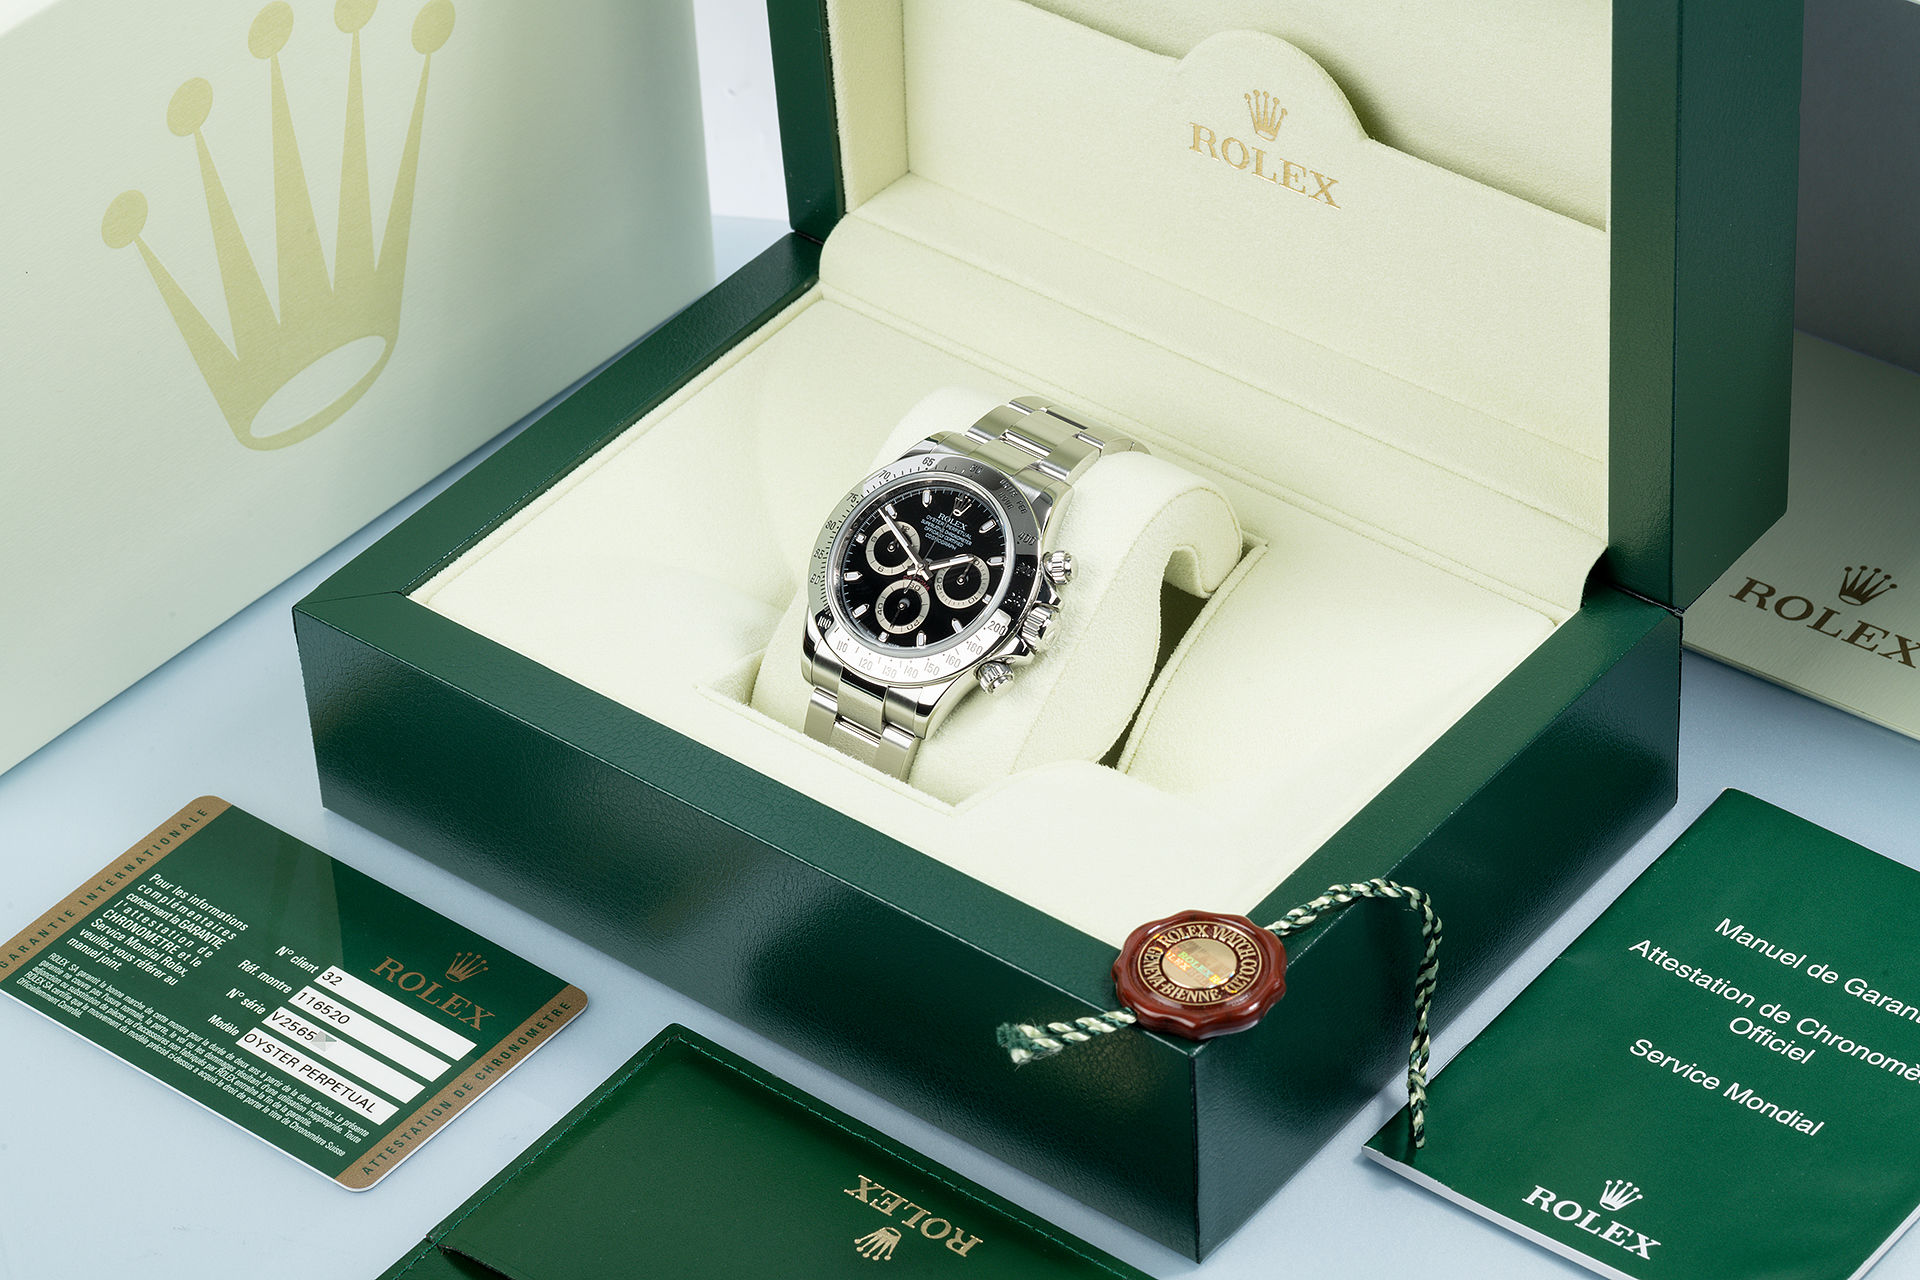 ref 116520 | Complete Set 'Discontinued Model' | Rolex Cosmograph Daytona